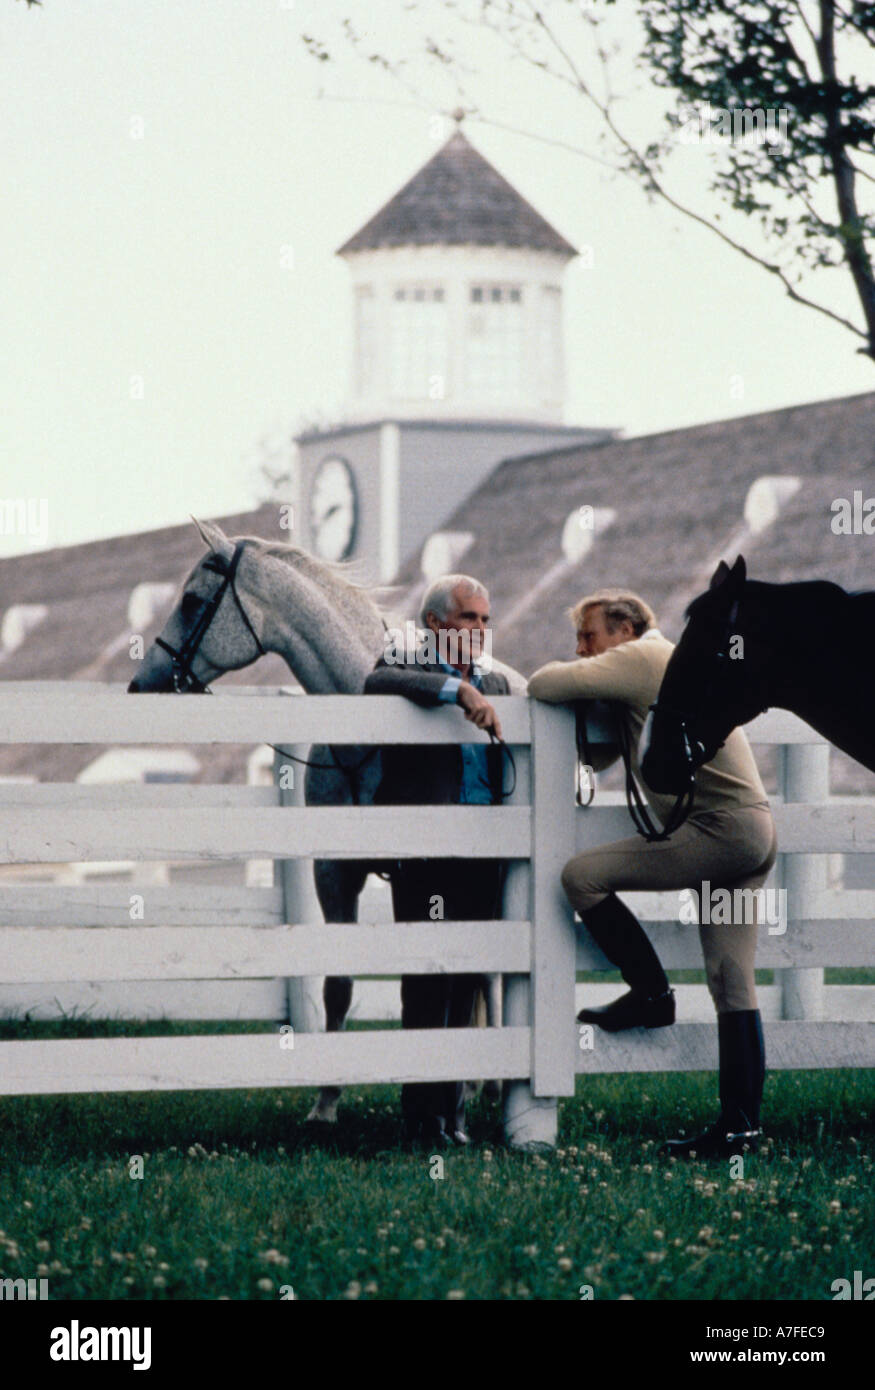 Two men in riding clothing standing with horses and talking over a white wooden fence - Stock Image